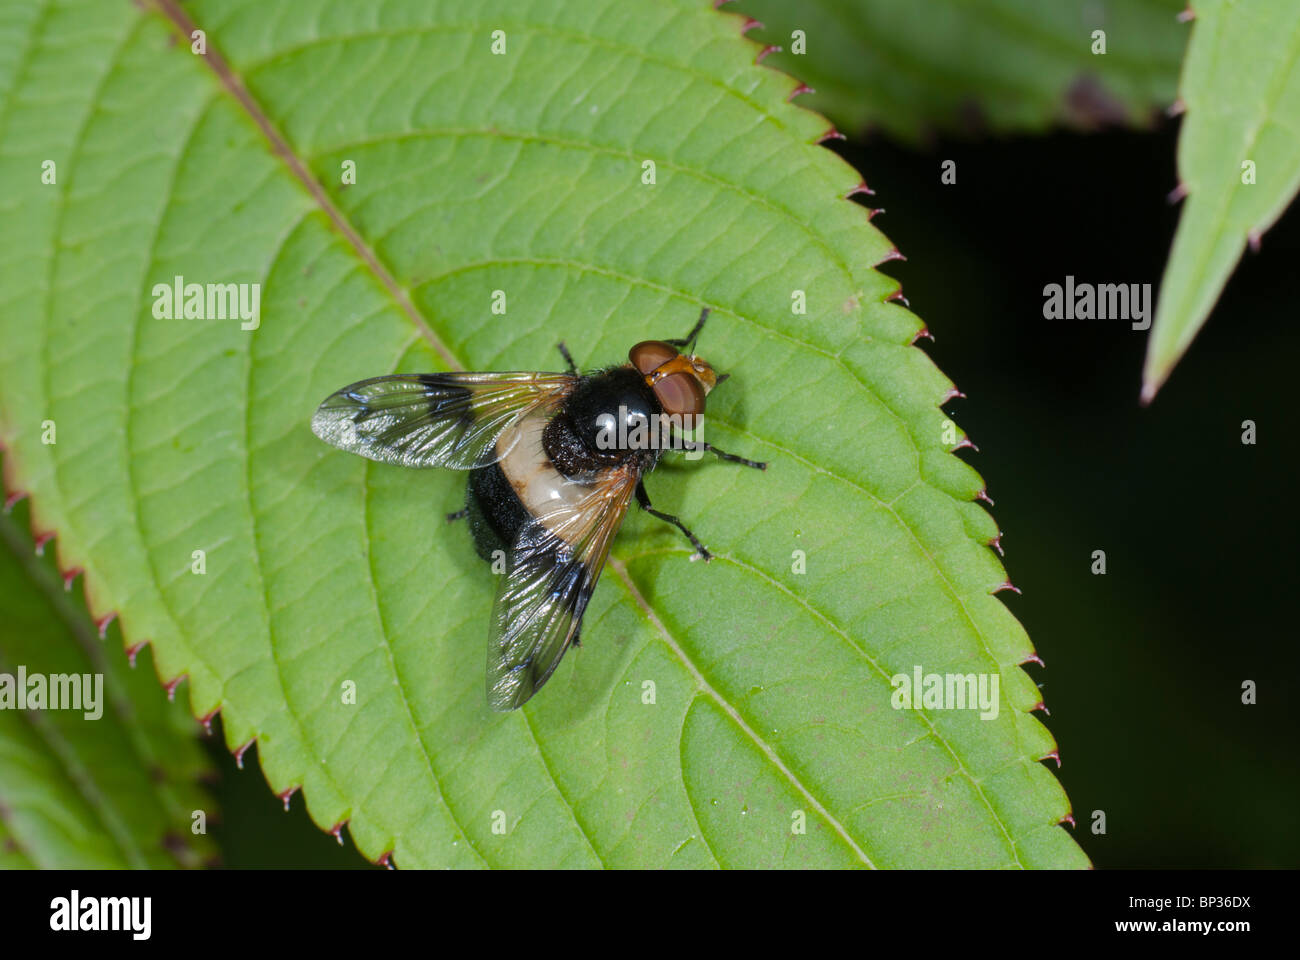 Hover-fly (Volucella pellucens) - Stock Image